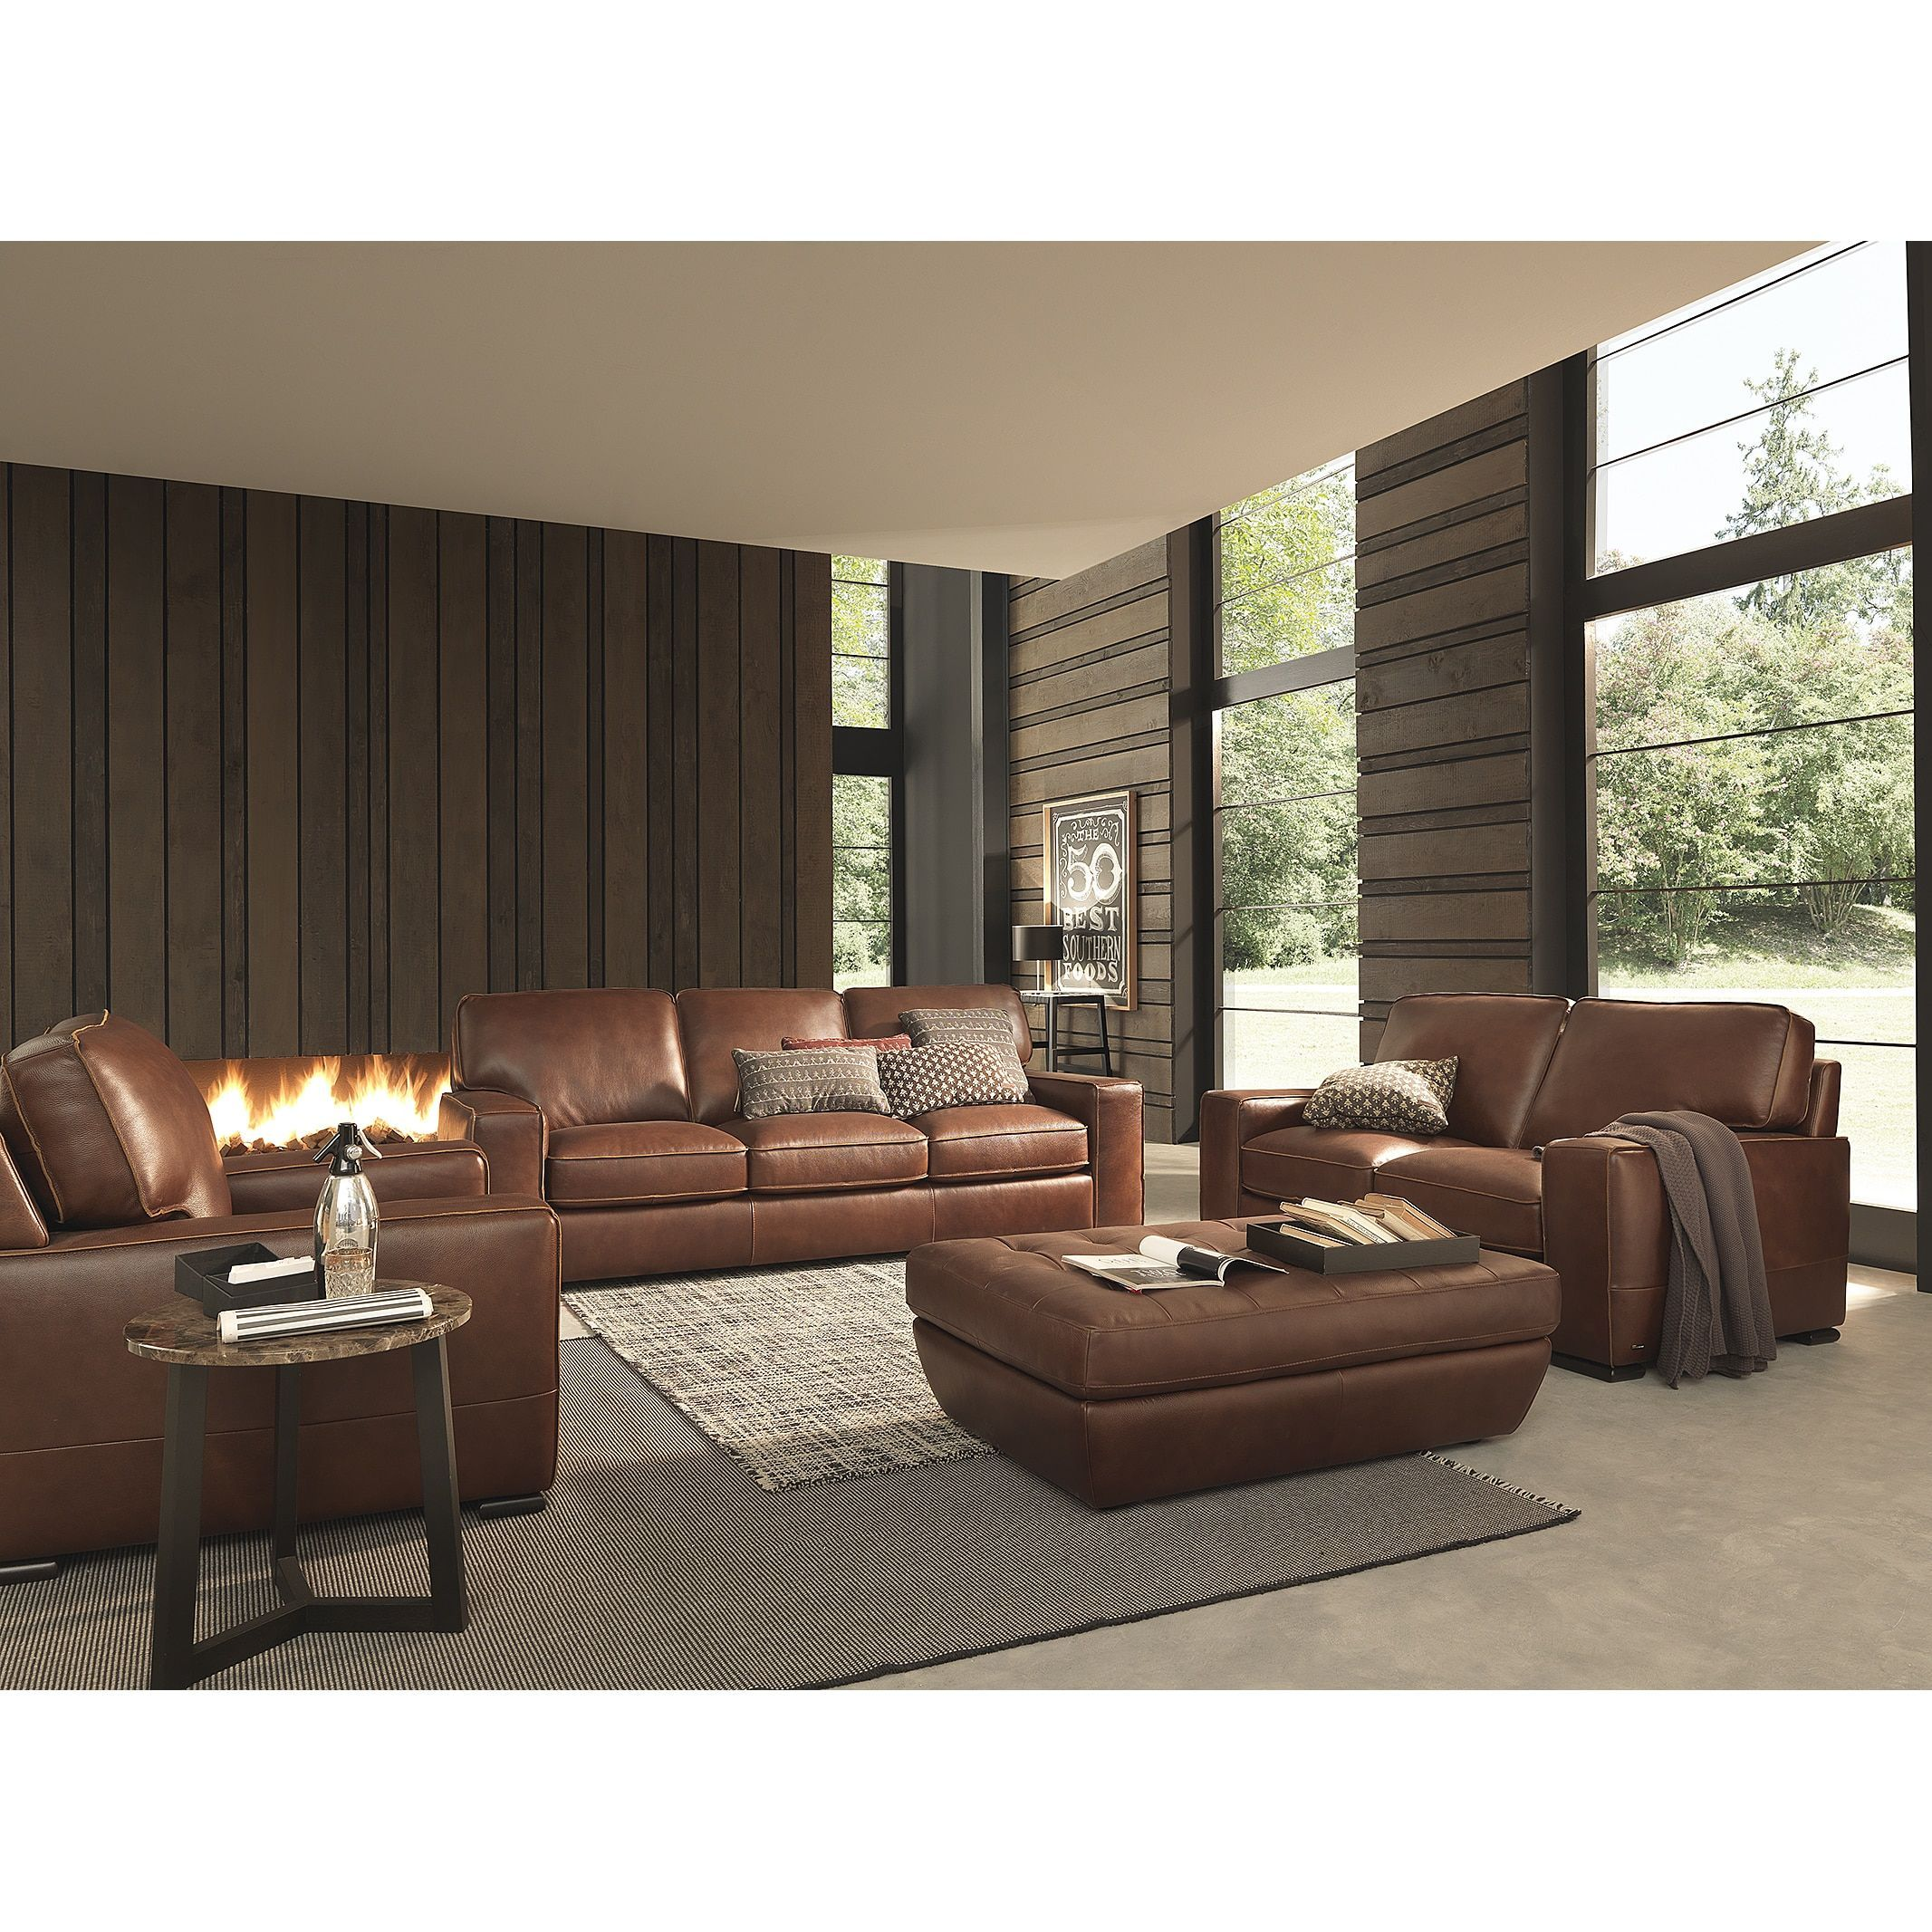 Natuzzi Breckenridge Chestnut Brown Leather Arm Chair Chestnut  # Muebles Violino